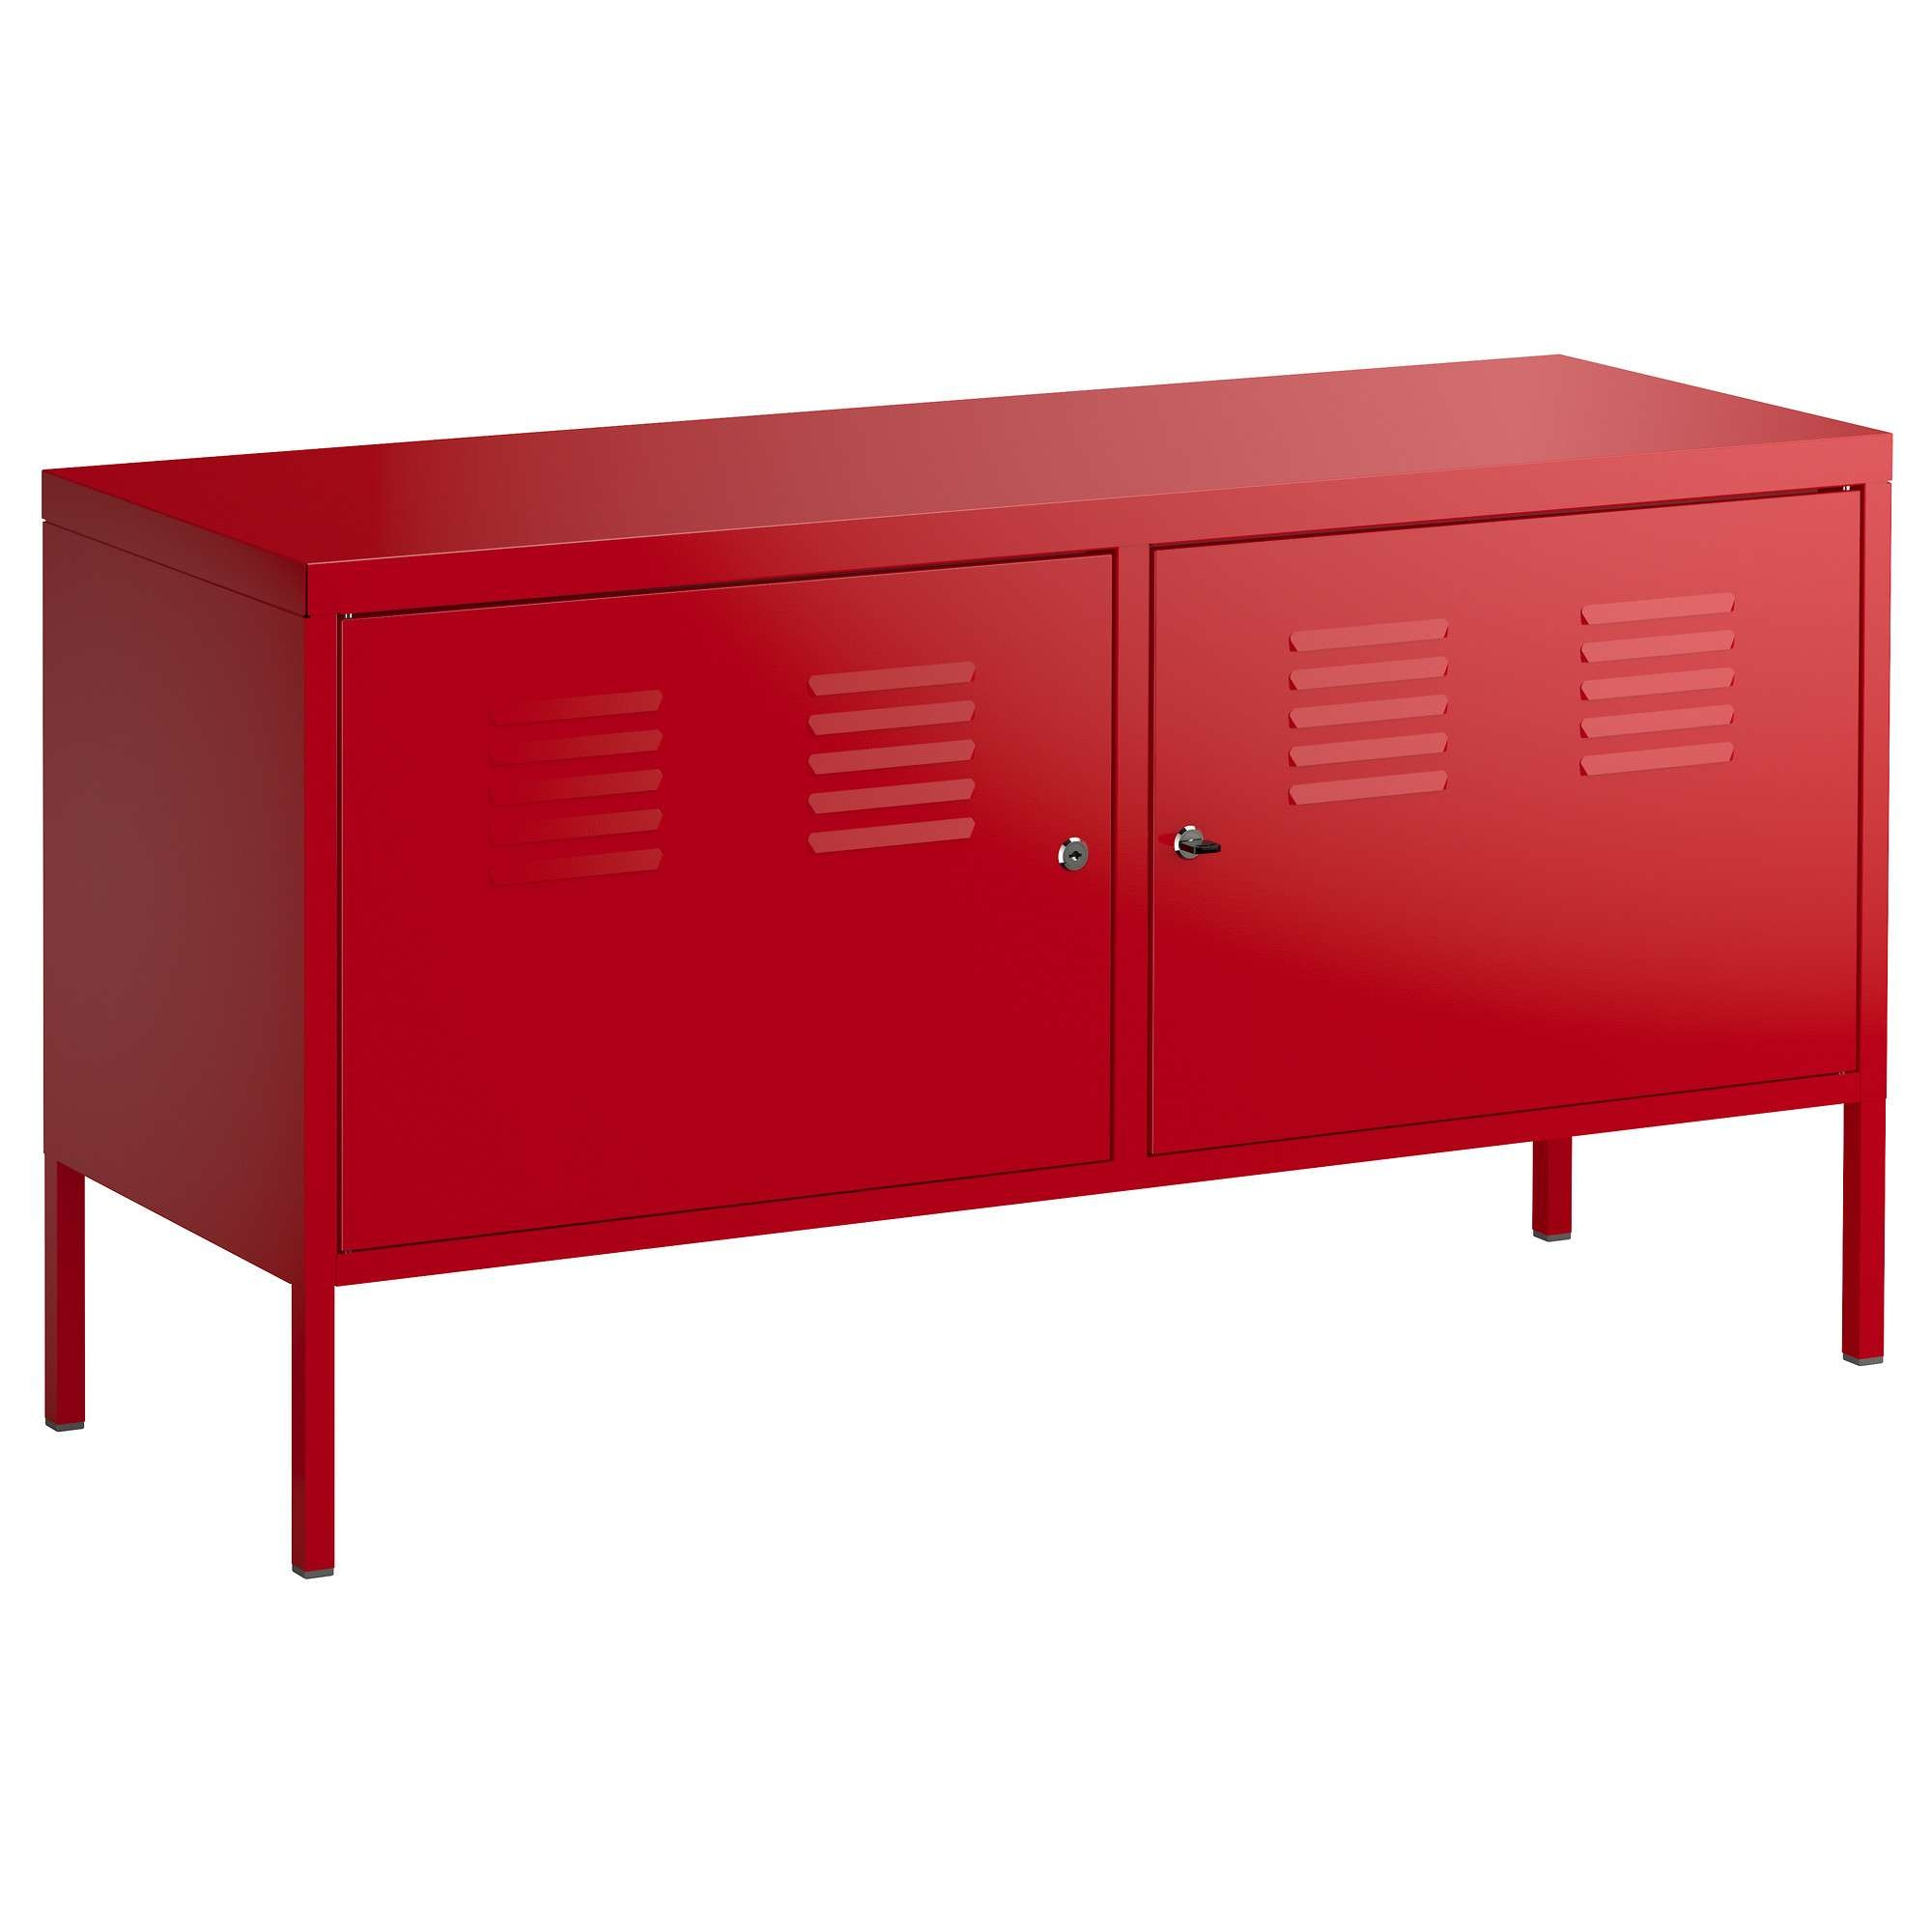 Ikea Ps Cabinet – Red – Ikea With Regard To Red Buffet Sideboards (Gallery 15 of 20)